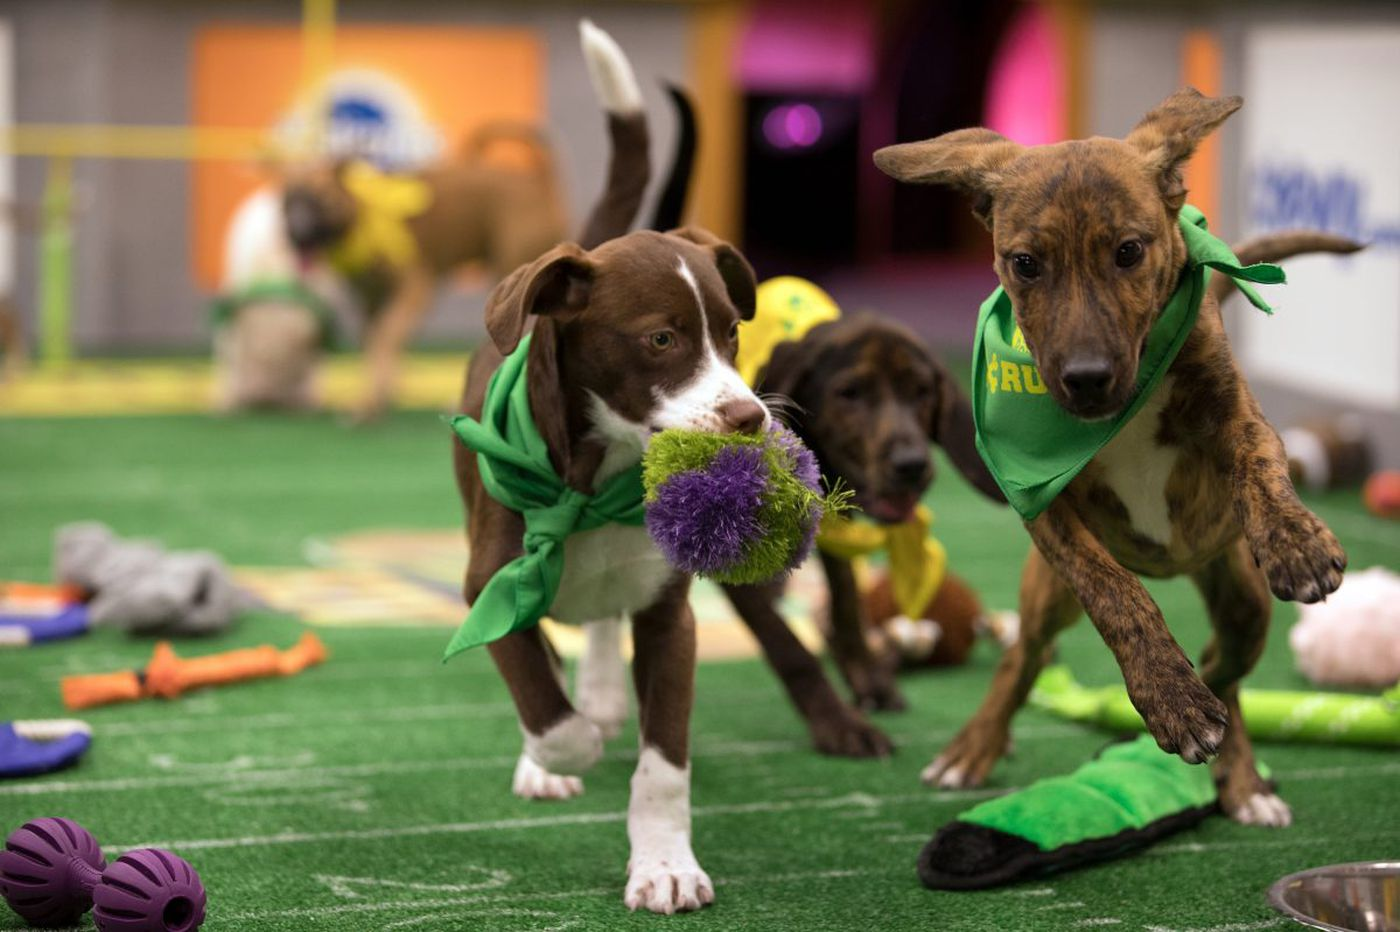 TV picks: 'This Is Us' (twice), 'Puppy Bowl XIV,' 'Animals With Cameras,' and more